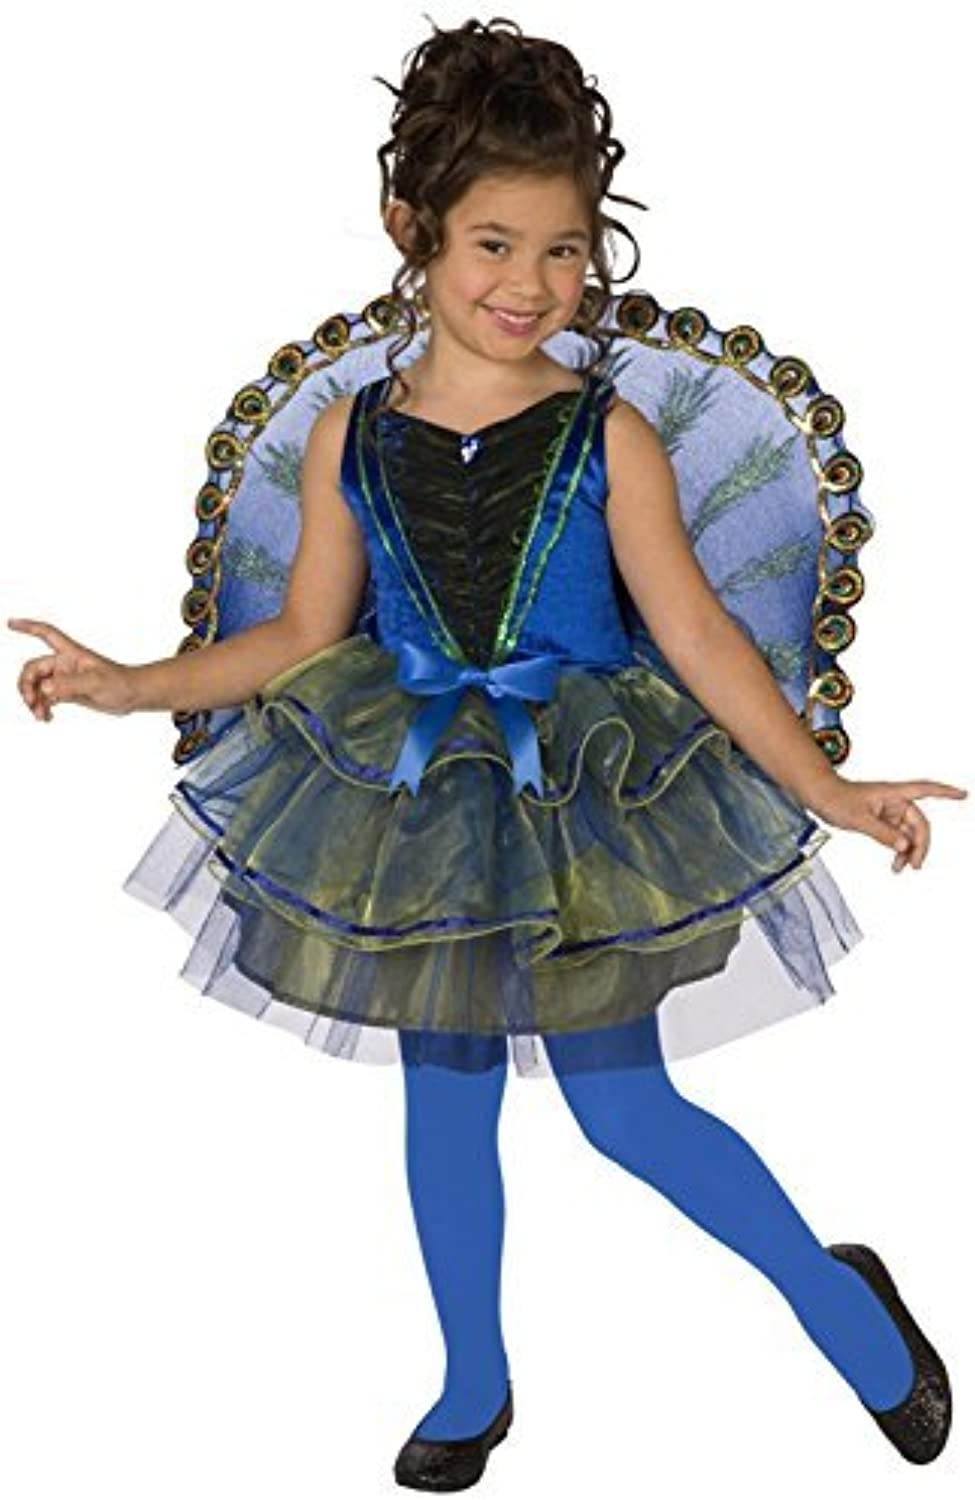 punto de venta Other Manufacturers girls Big Girls' Peacock Costume Medium (8-10) (8-10) (8-10) by Other Manufacturers  envío gratis